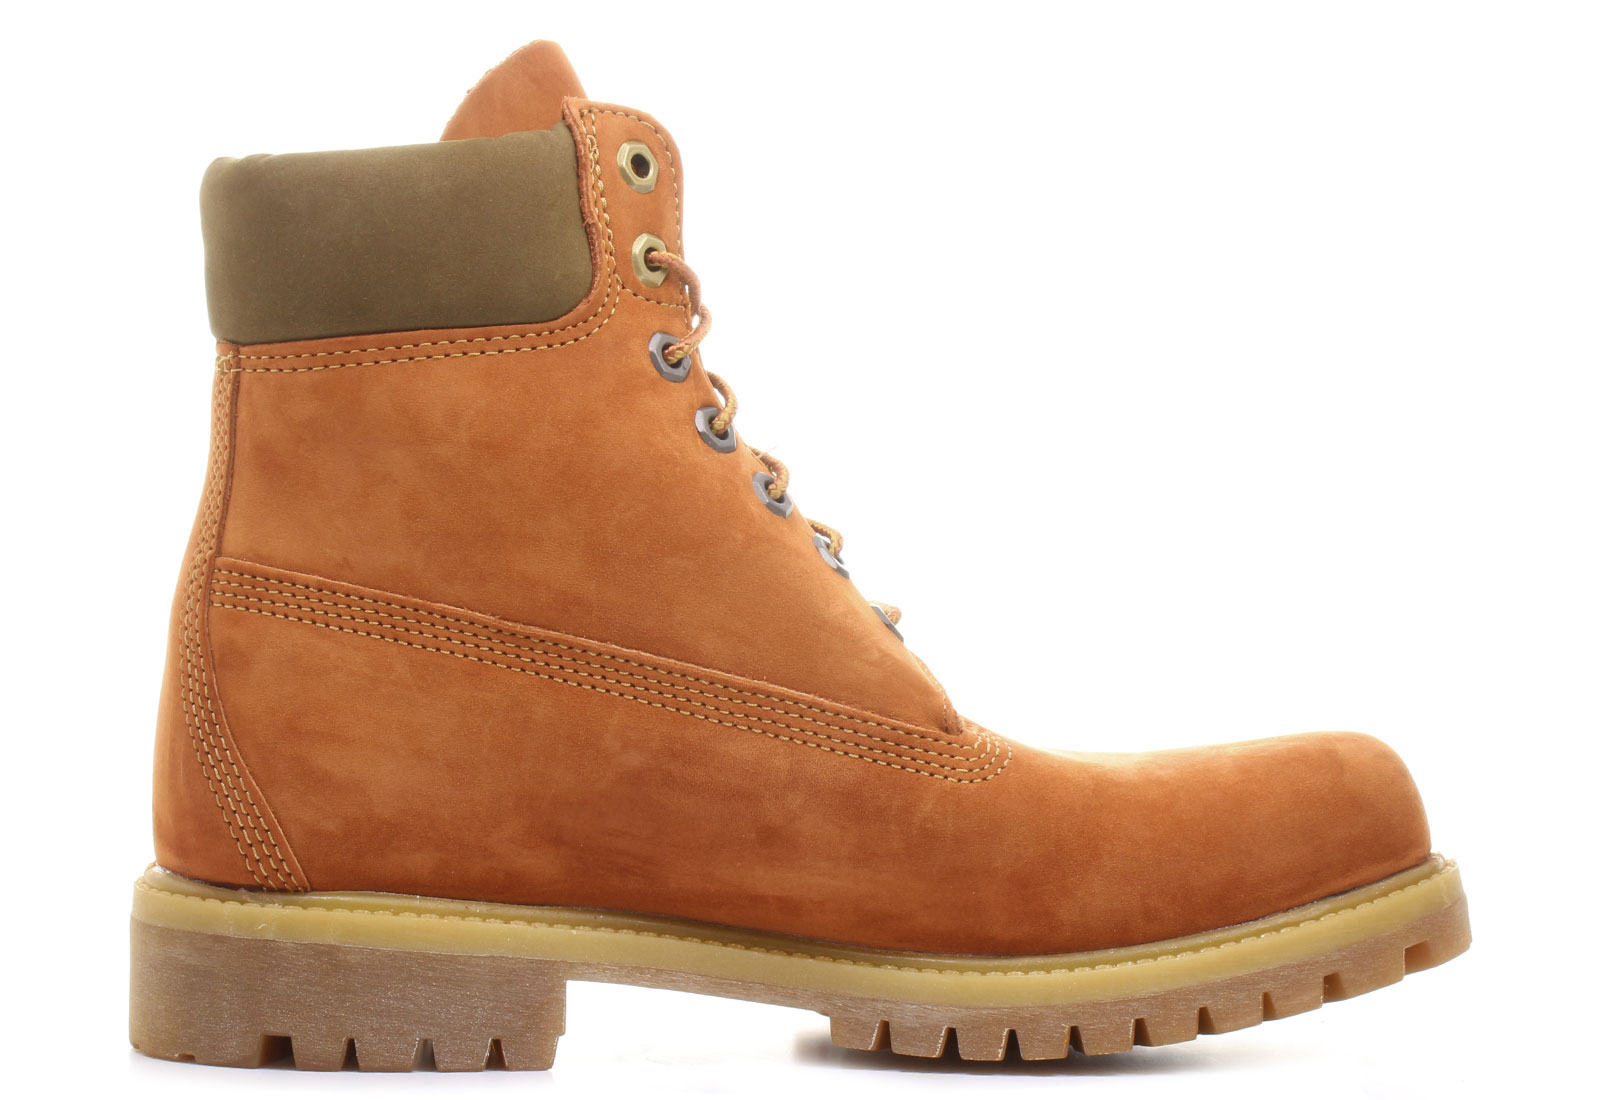 timberland boots 6 inch premium boot a17yc org online shop for sneakers shoes and boots. Black Bedroom Furniture Sets. Home Design Ideas